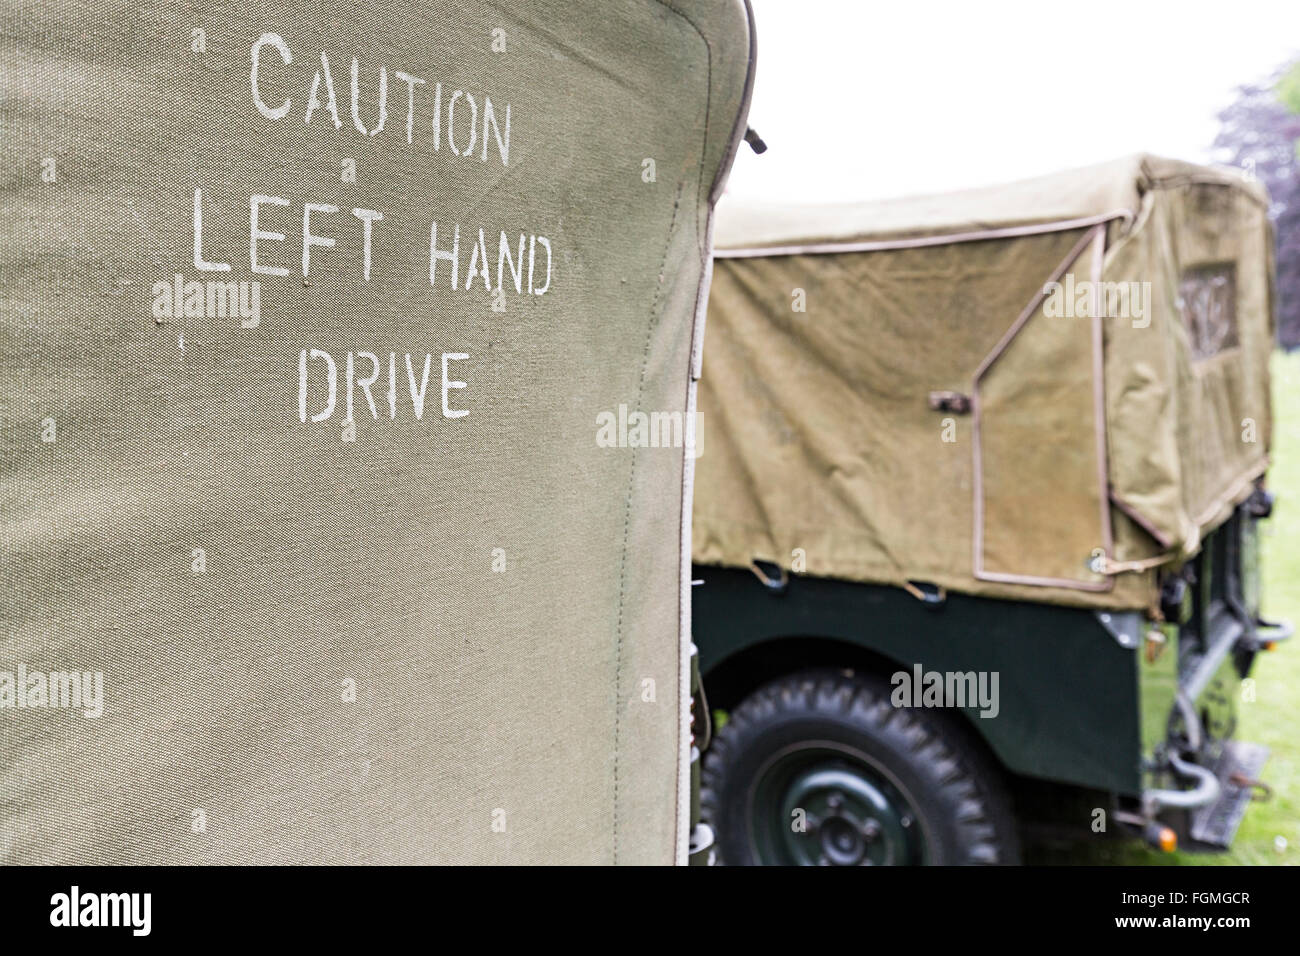 Caution Left Hand Drive notice on back of US Military jeep on display in UK - Stock Image